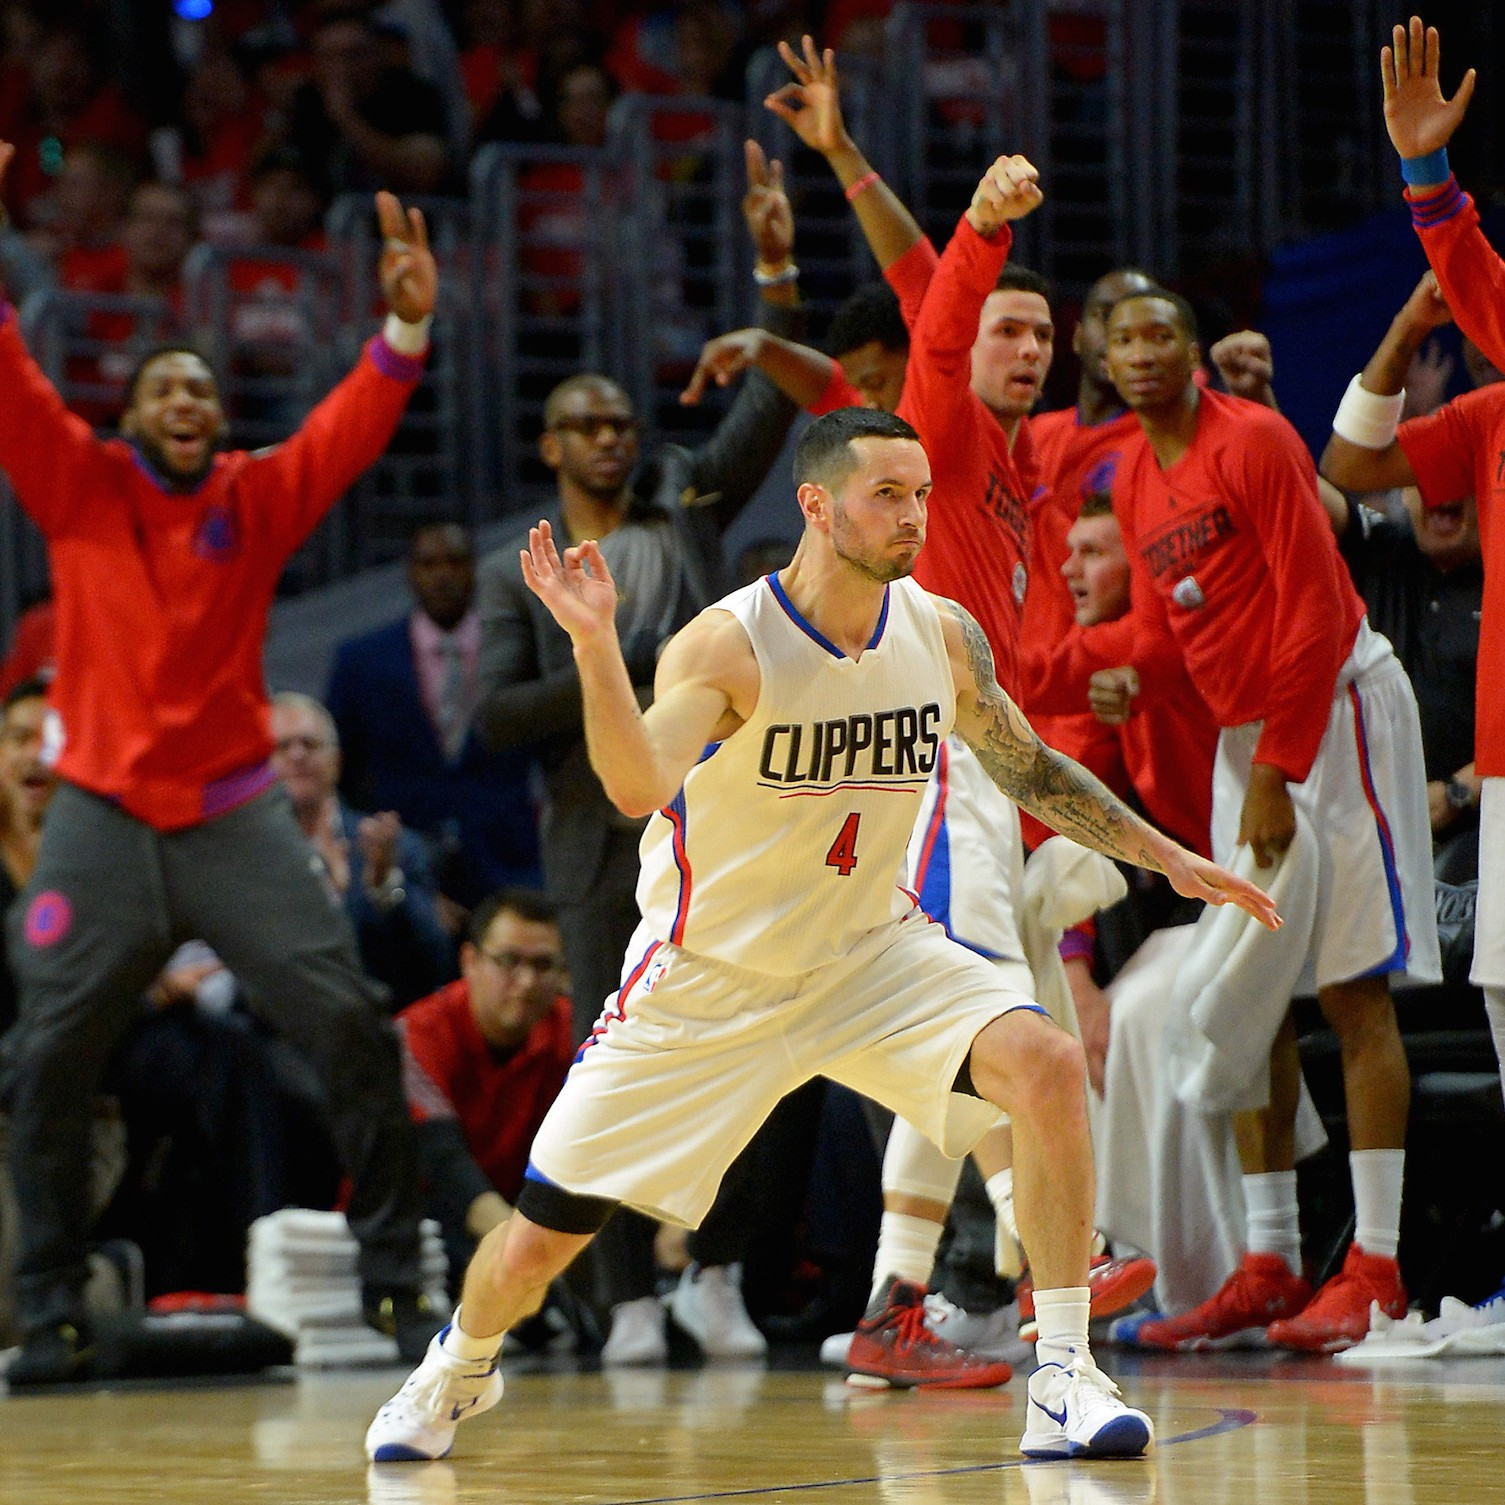 Blake-griffin-chris-paul-down-clippers-not-out-1461950643.jpg?crop=0